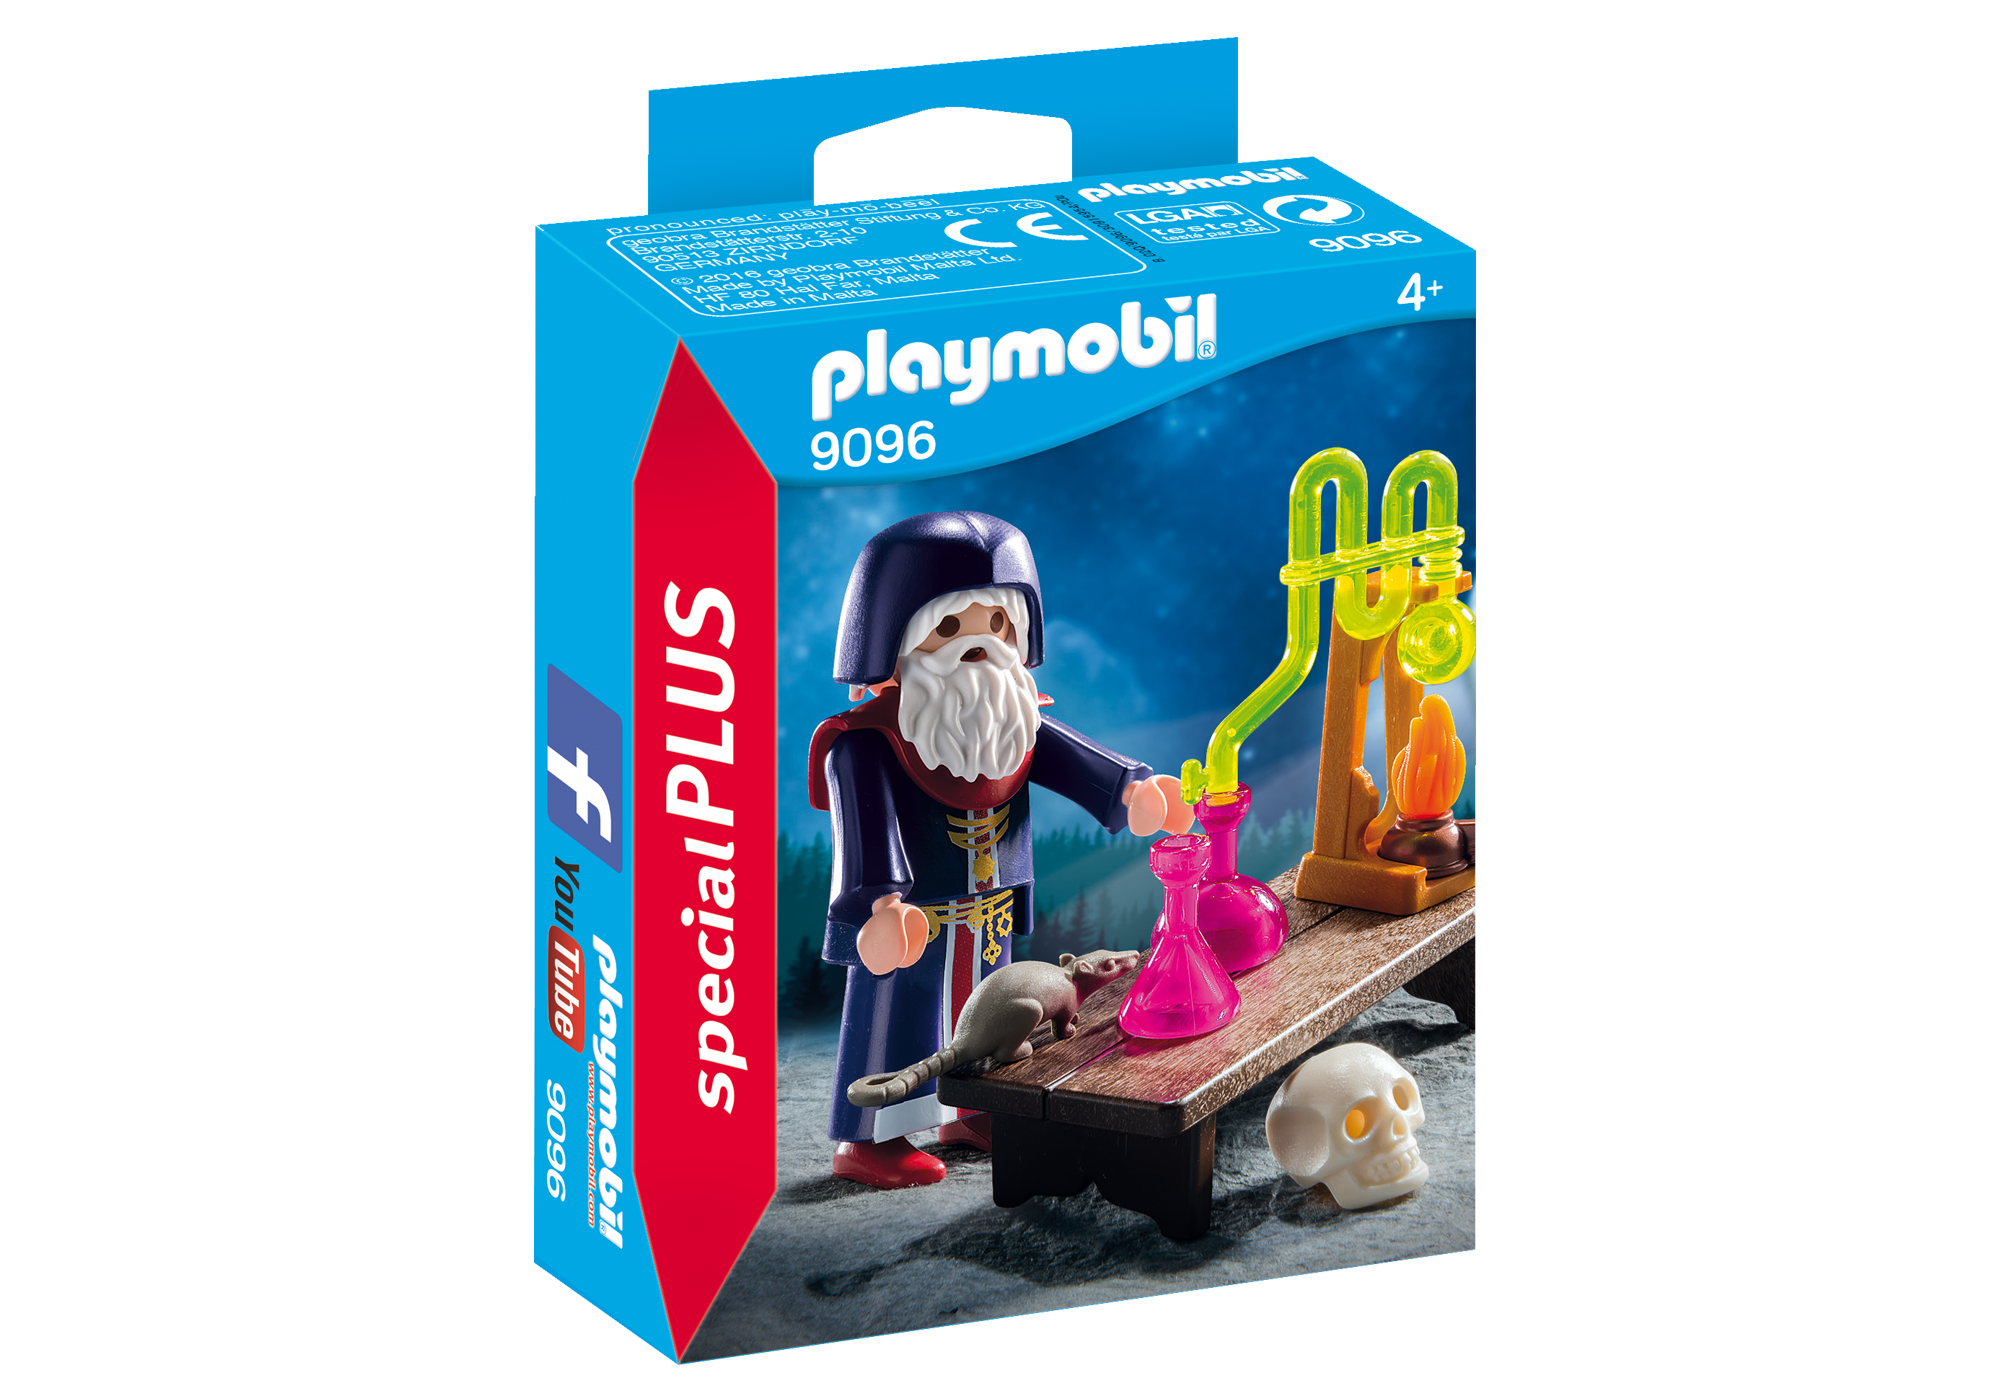 http://media.playmobil.com/i/playmobil/9096_product_box_front/Alchemist with Potions